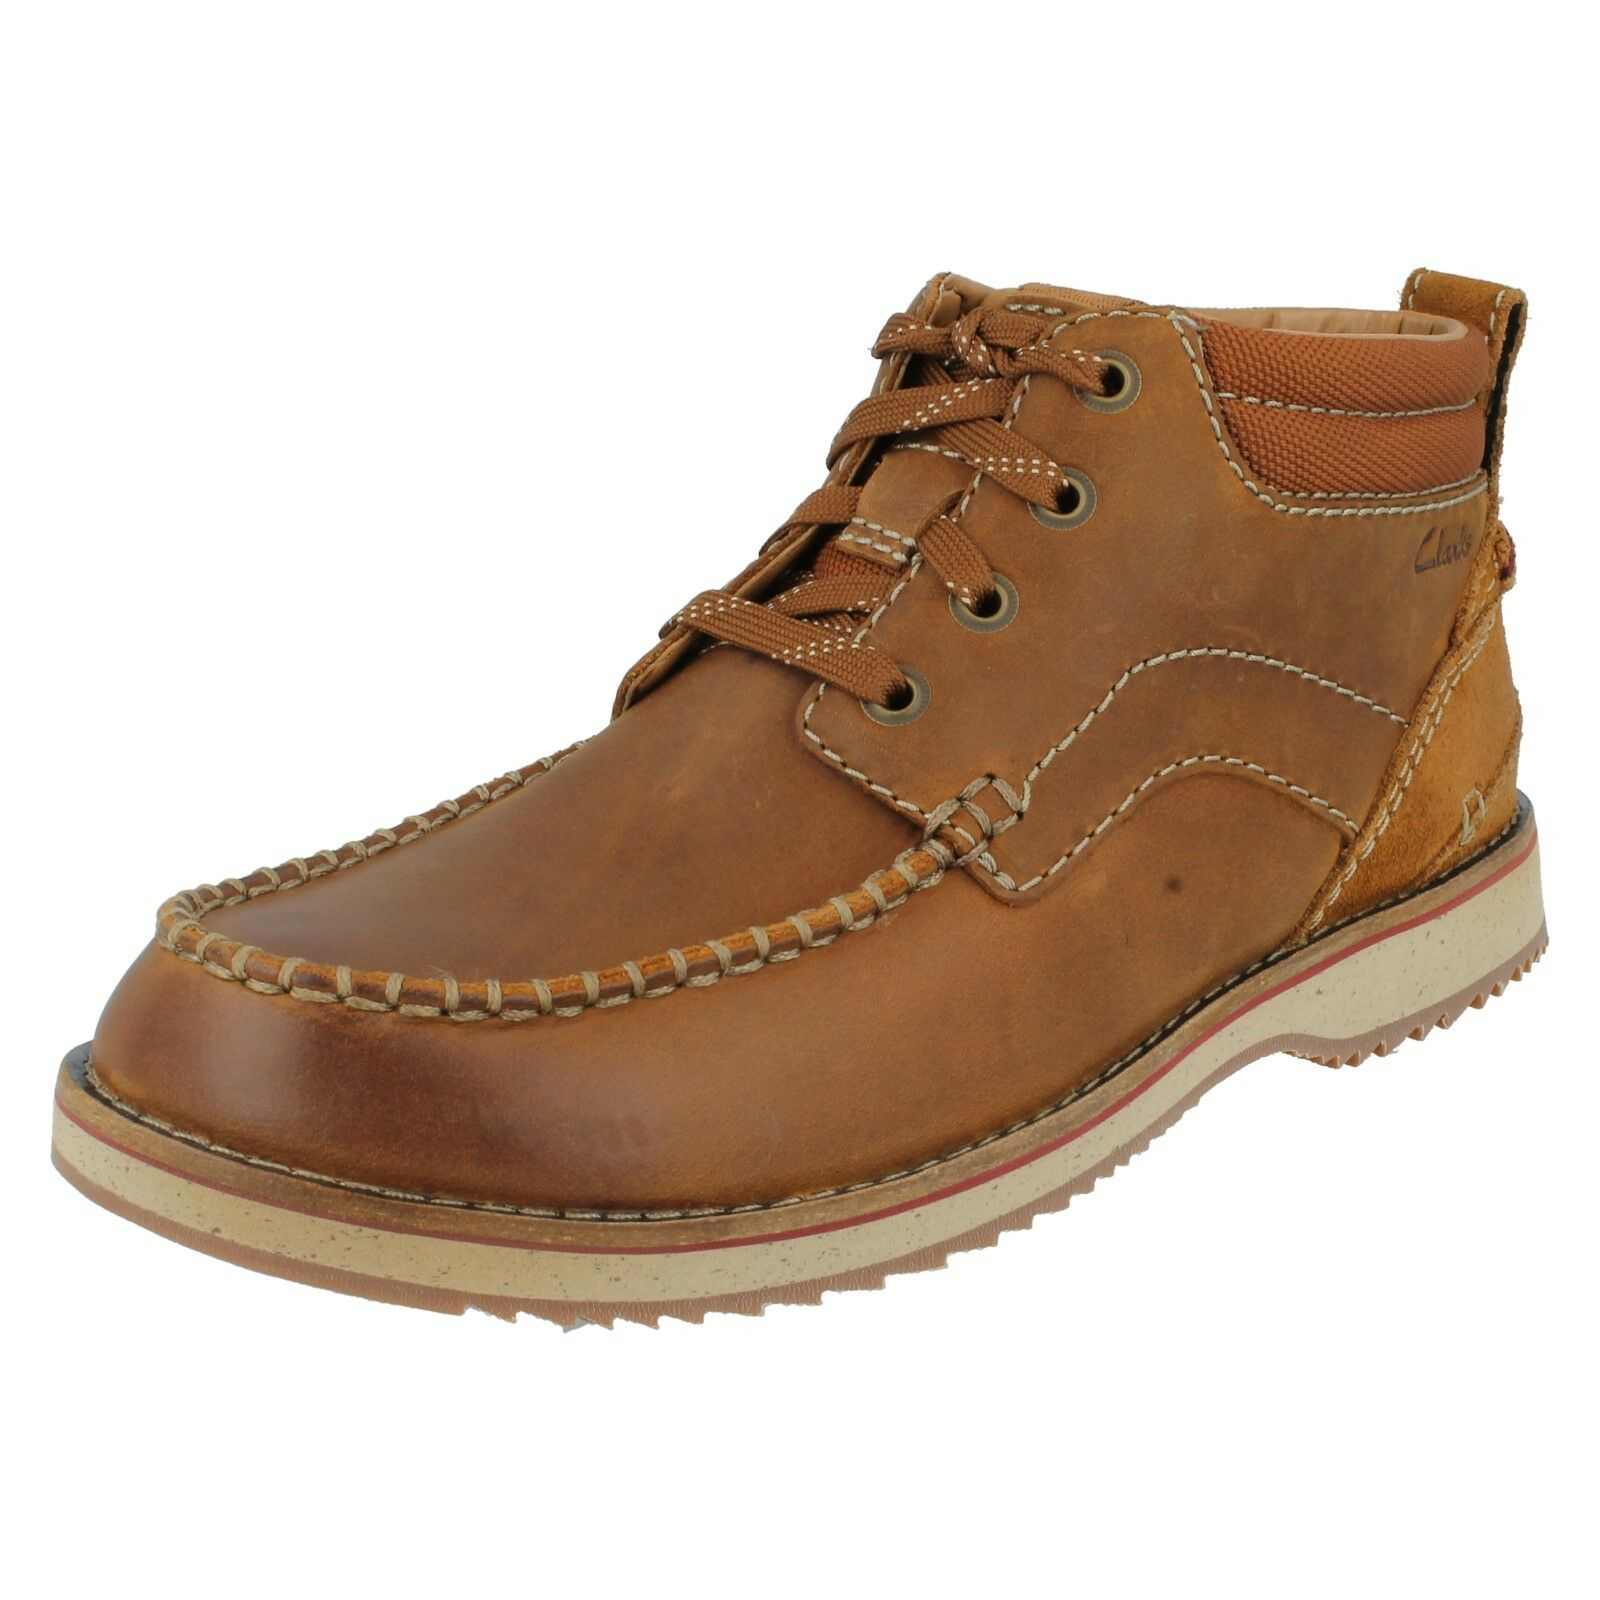 MAHALE MID  Herren CLARKS NUBUCK LEATHER LEATHER LEATHER LACE UP G FIT CASUAL ANKLE CHUKKA Stiefel 1b7c2e